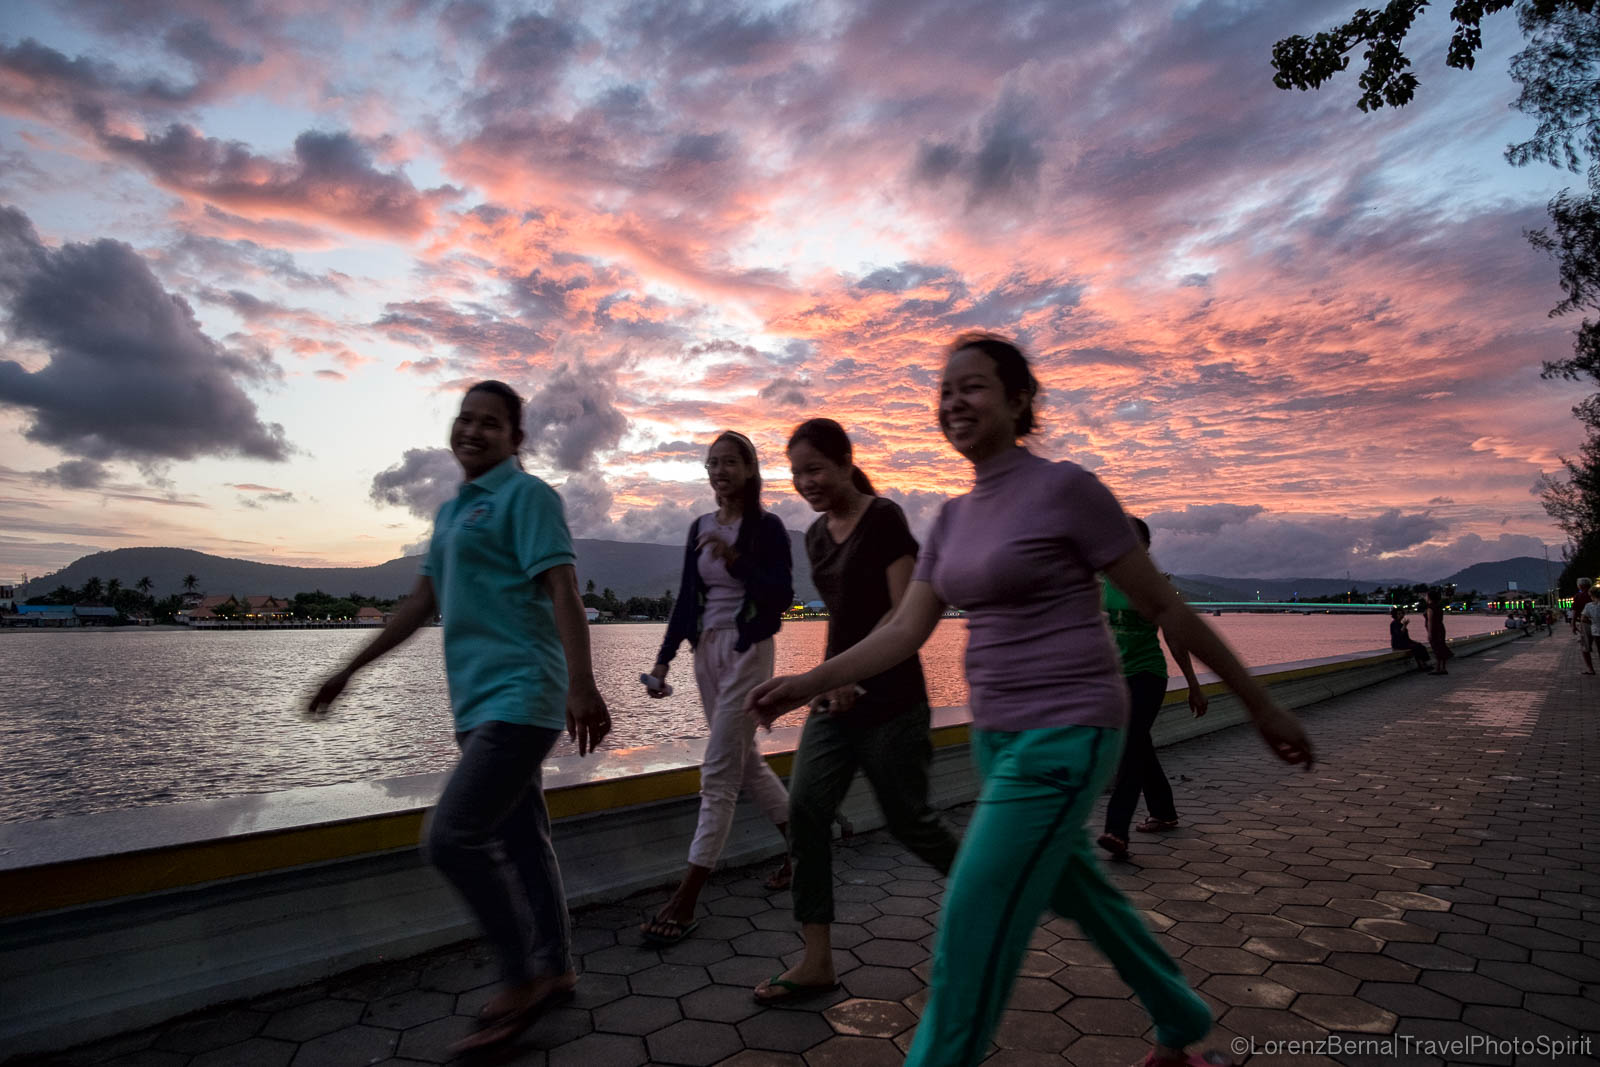 Group of women on an evening walk exercise on Kampot riverside, Cambodia.